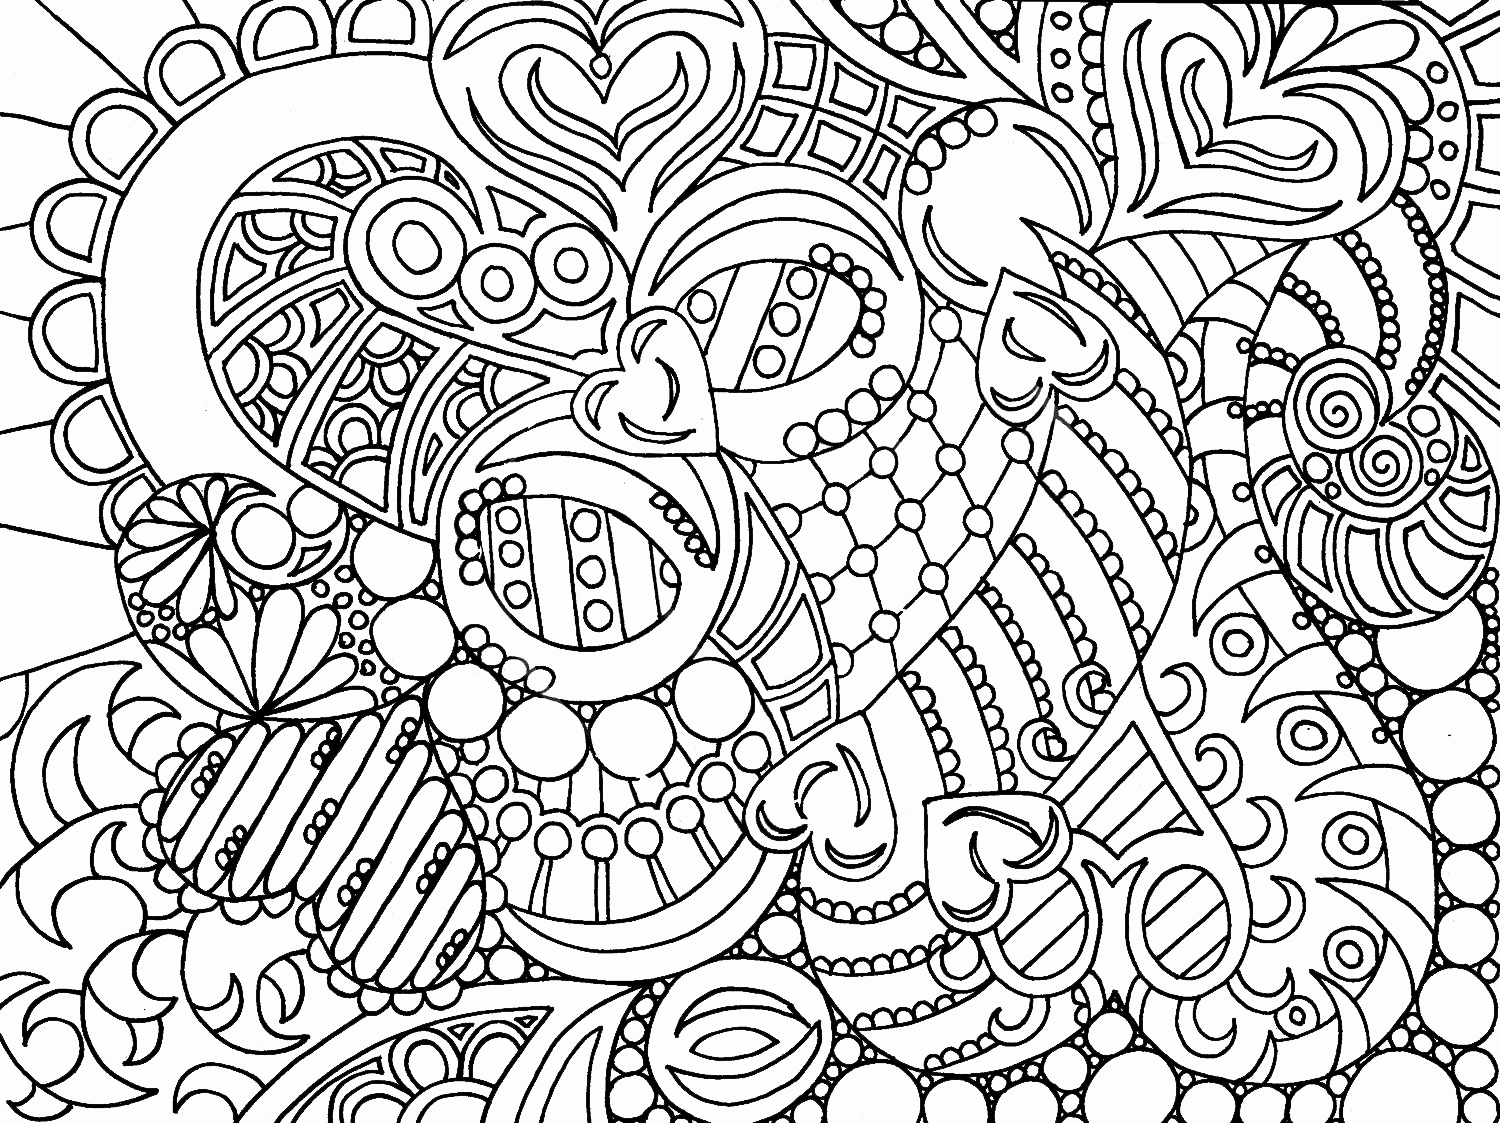 1500x1123 Creative Coloring Pages Print New Creative Coloring Pages